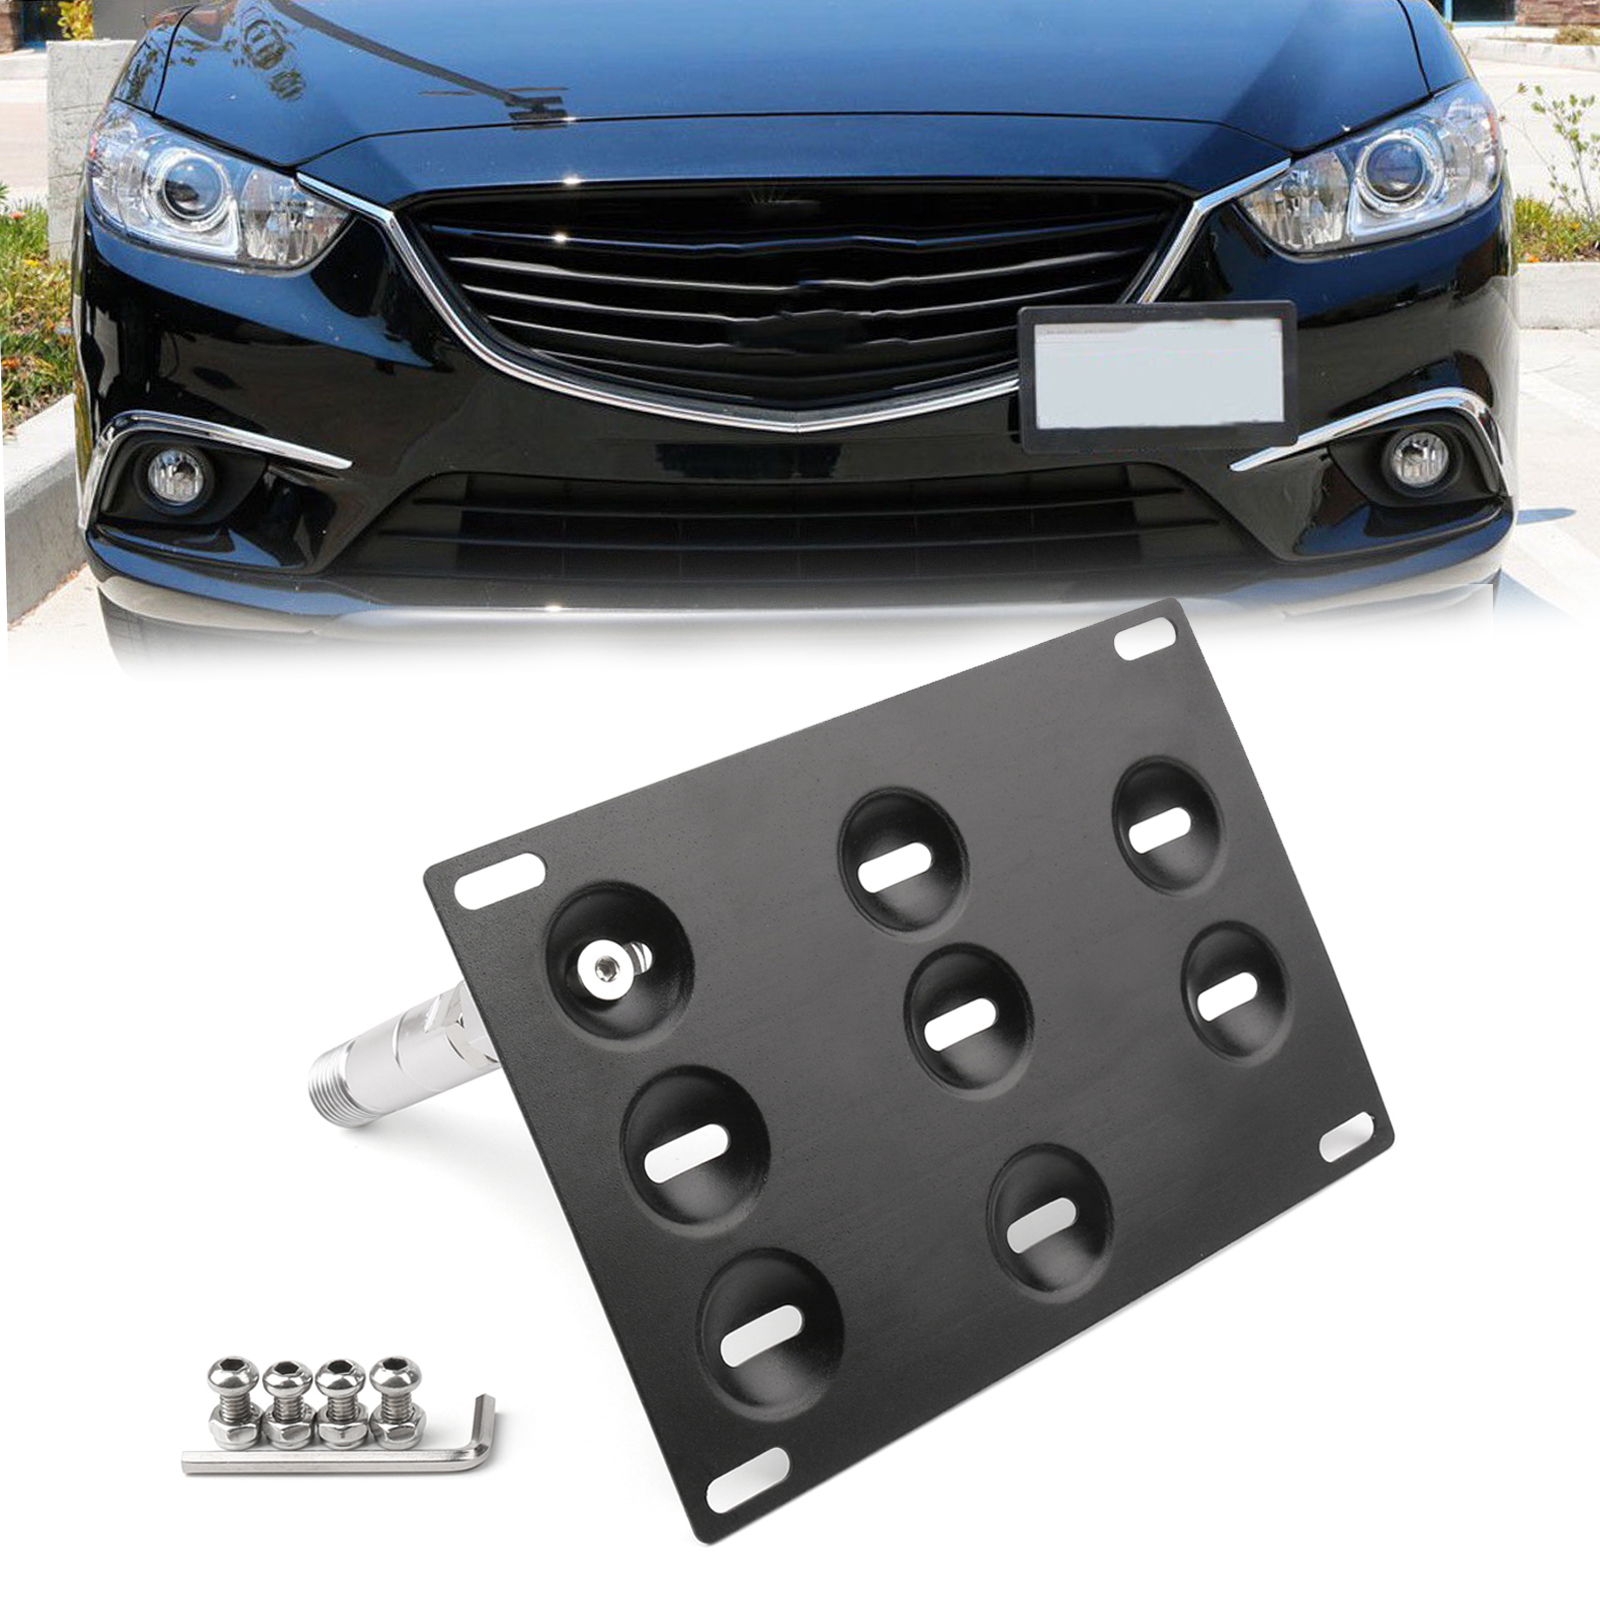 Areyourshop Bumper Tow Hook License Plate Mount Bracket Holder For <font><b>Mazda</b></font> 3 <font><b>Mazda</b></font> 6 <font><b>CX5</b></font> MX5 License Plate Holder Car Parts image